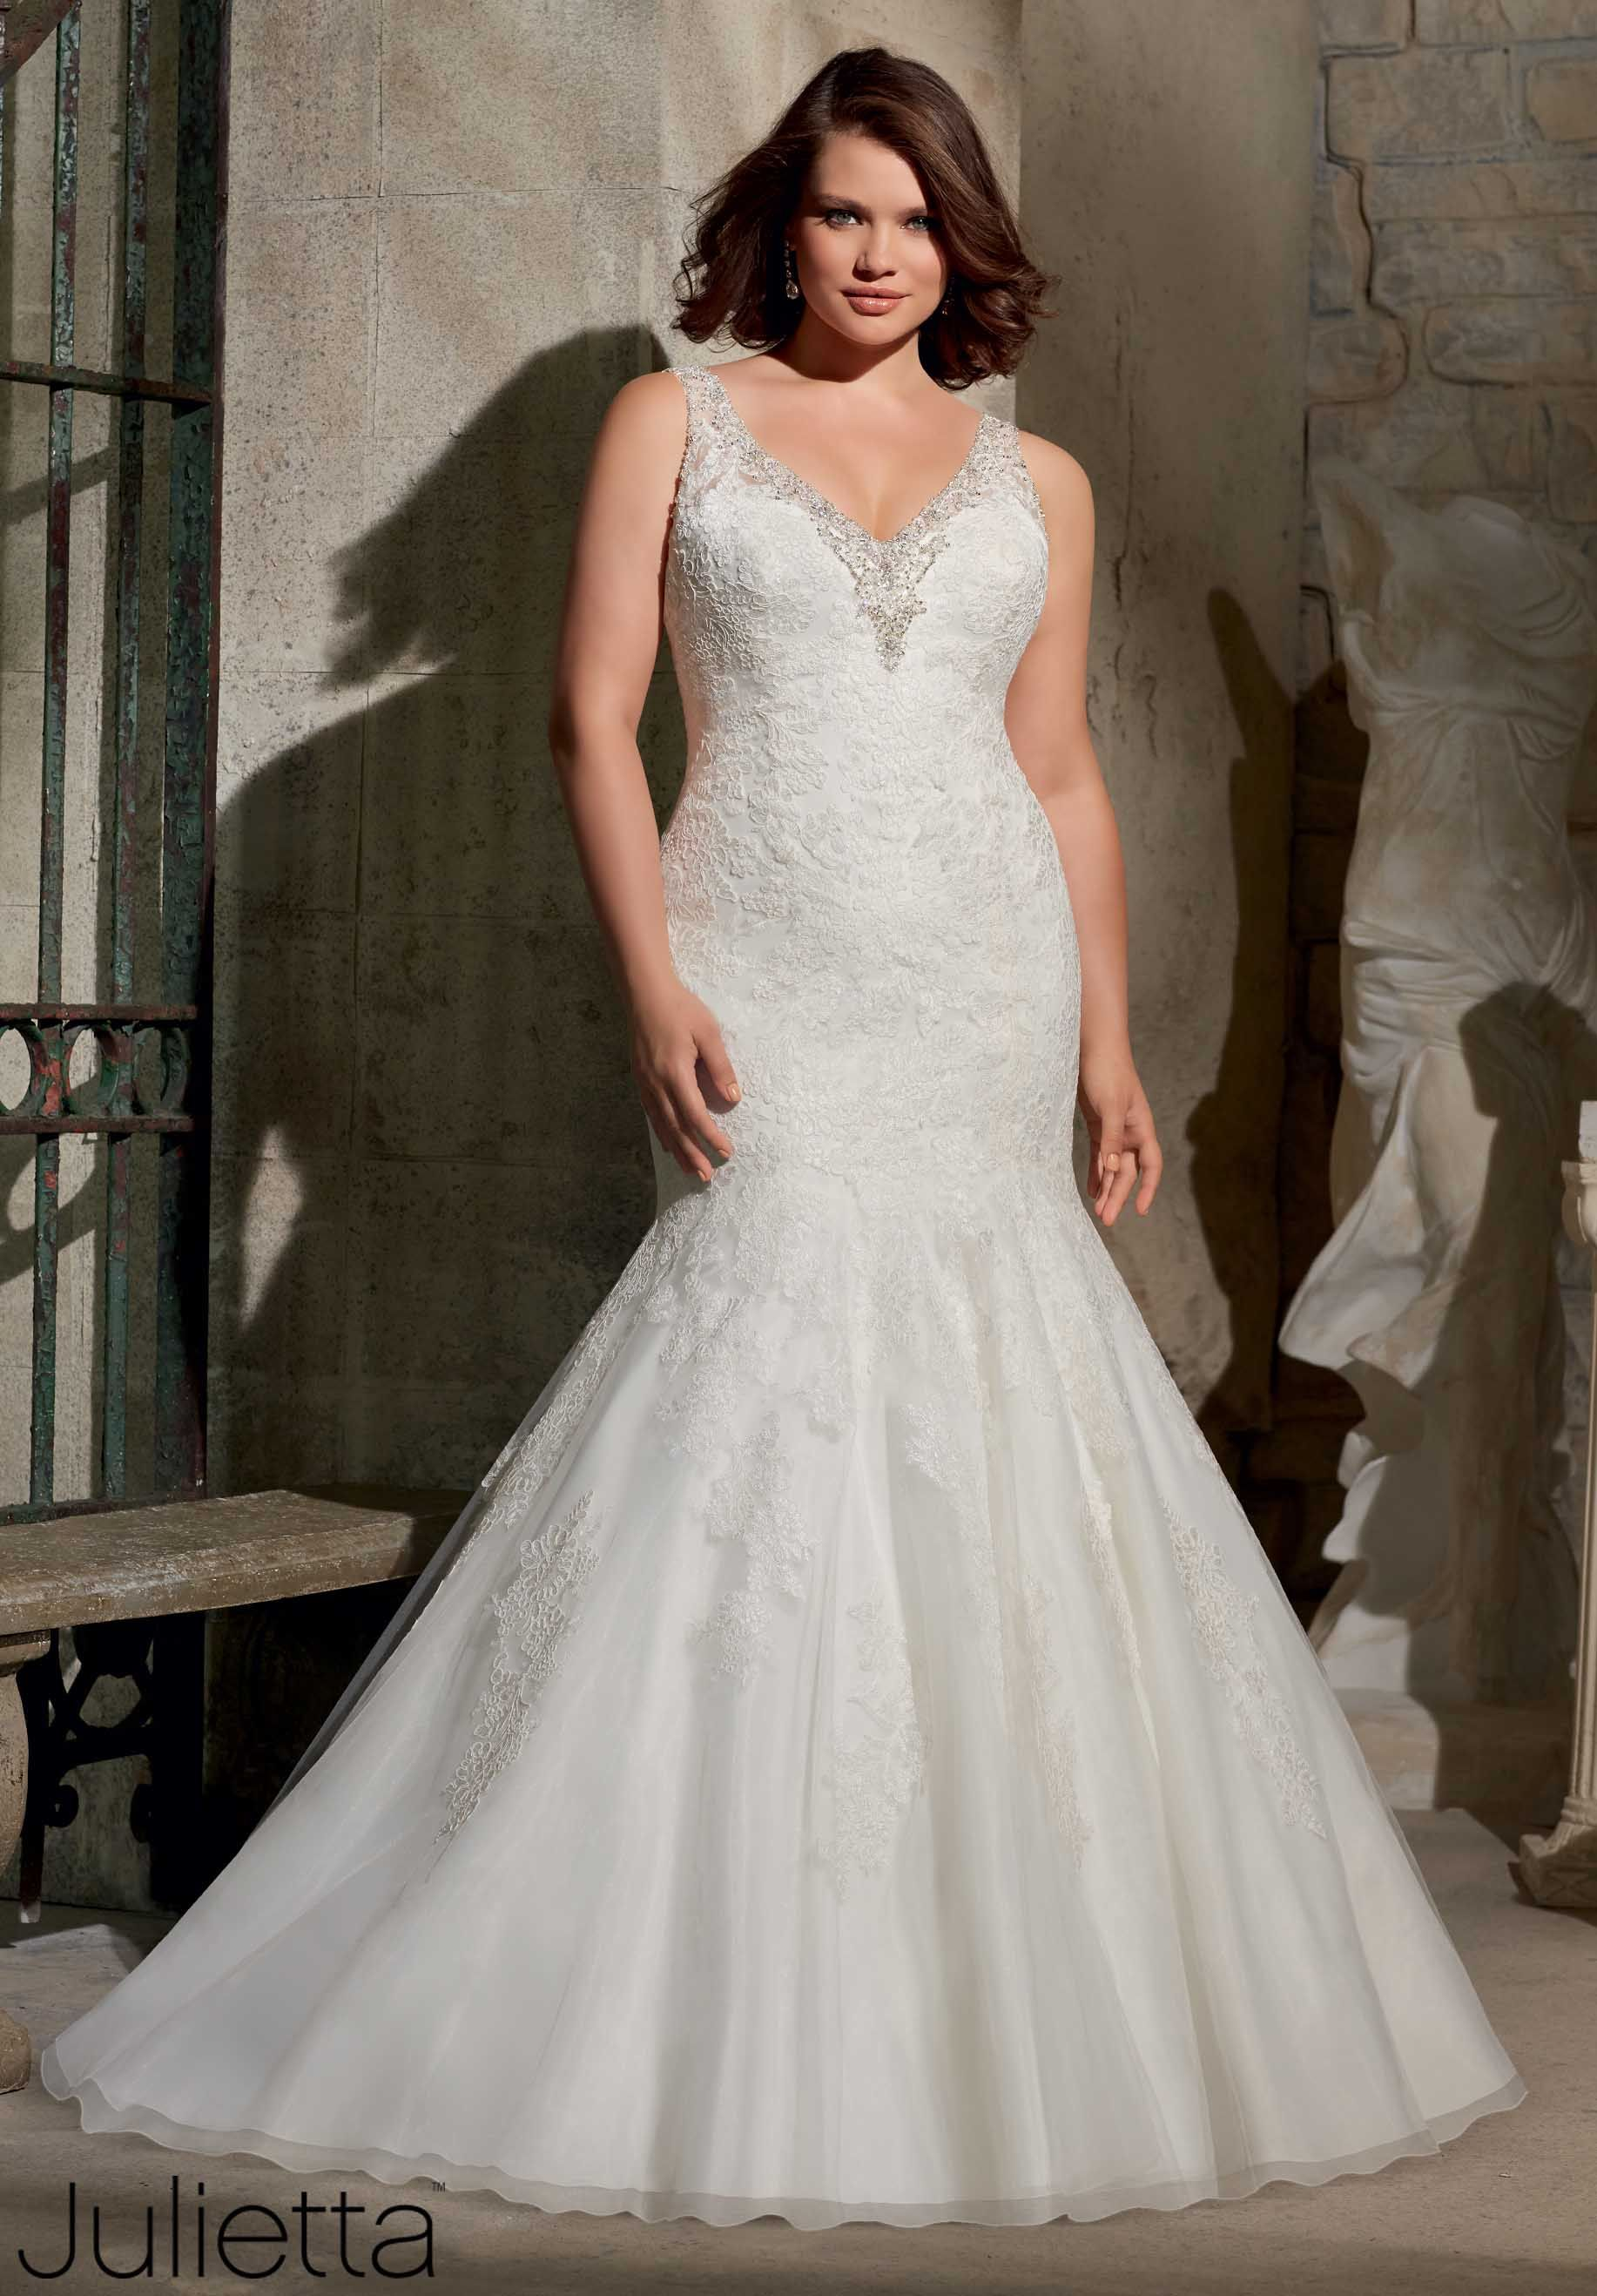 11 best plus size wedding dress images on pinterest boyfriends 11 best plus size wedding dress images on pinterest boyfriends bridal gowns and marriage ombrellifo Image collections